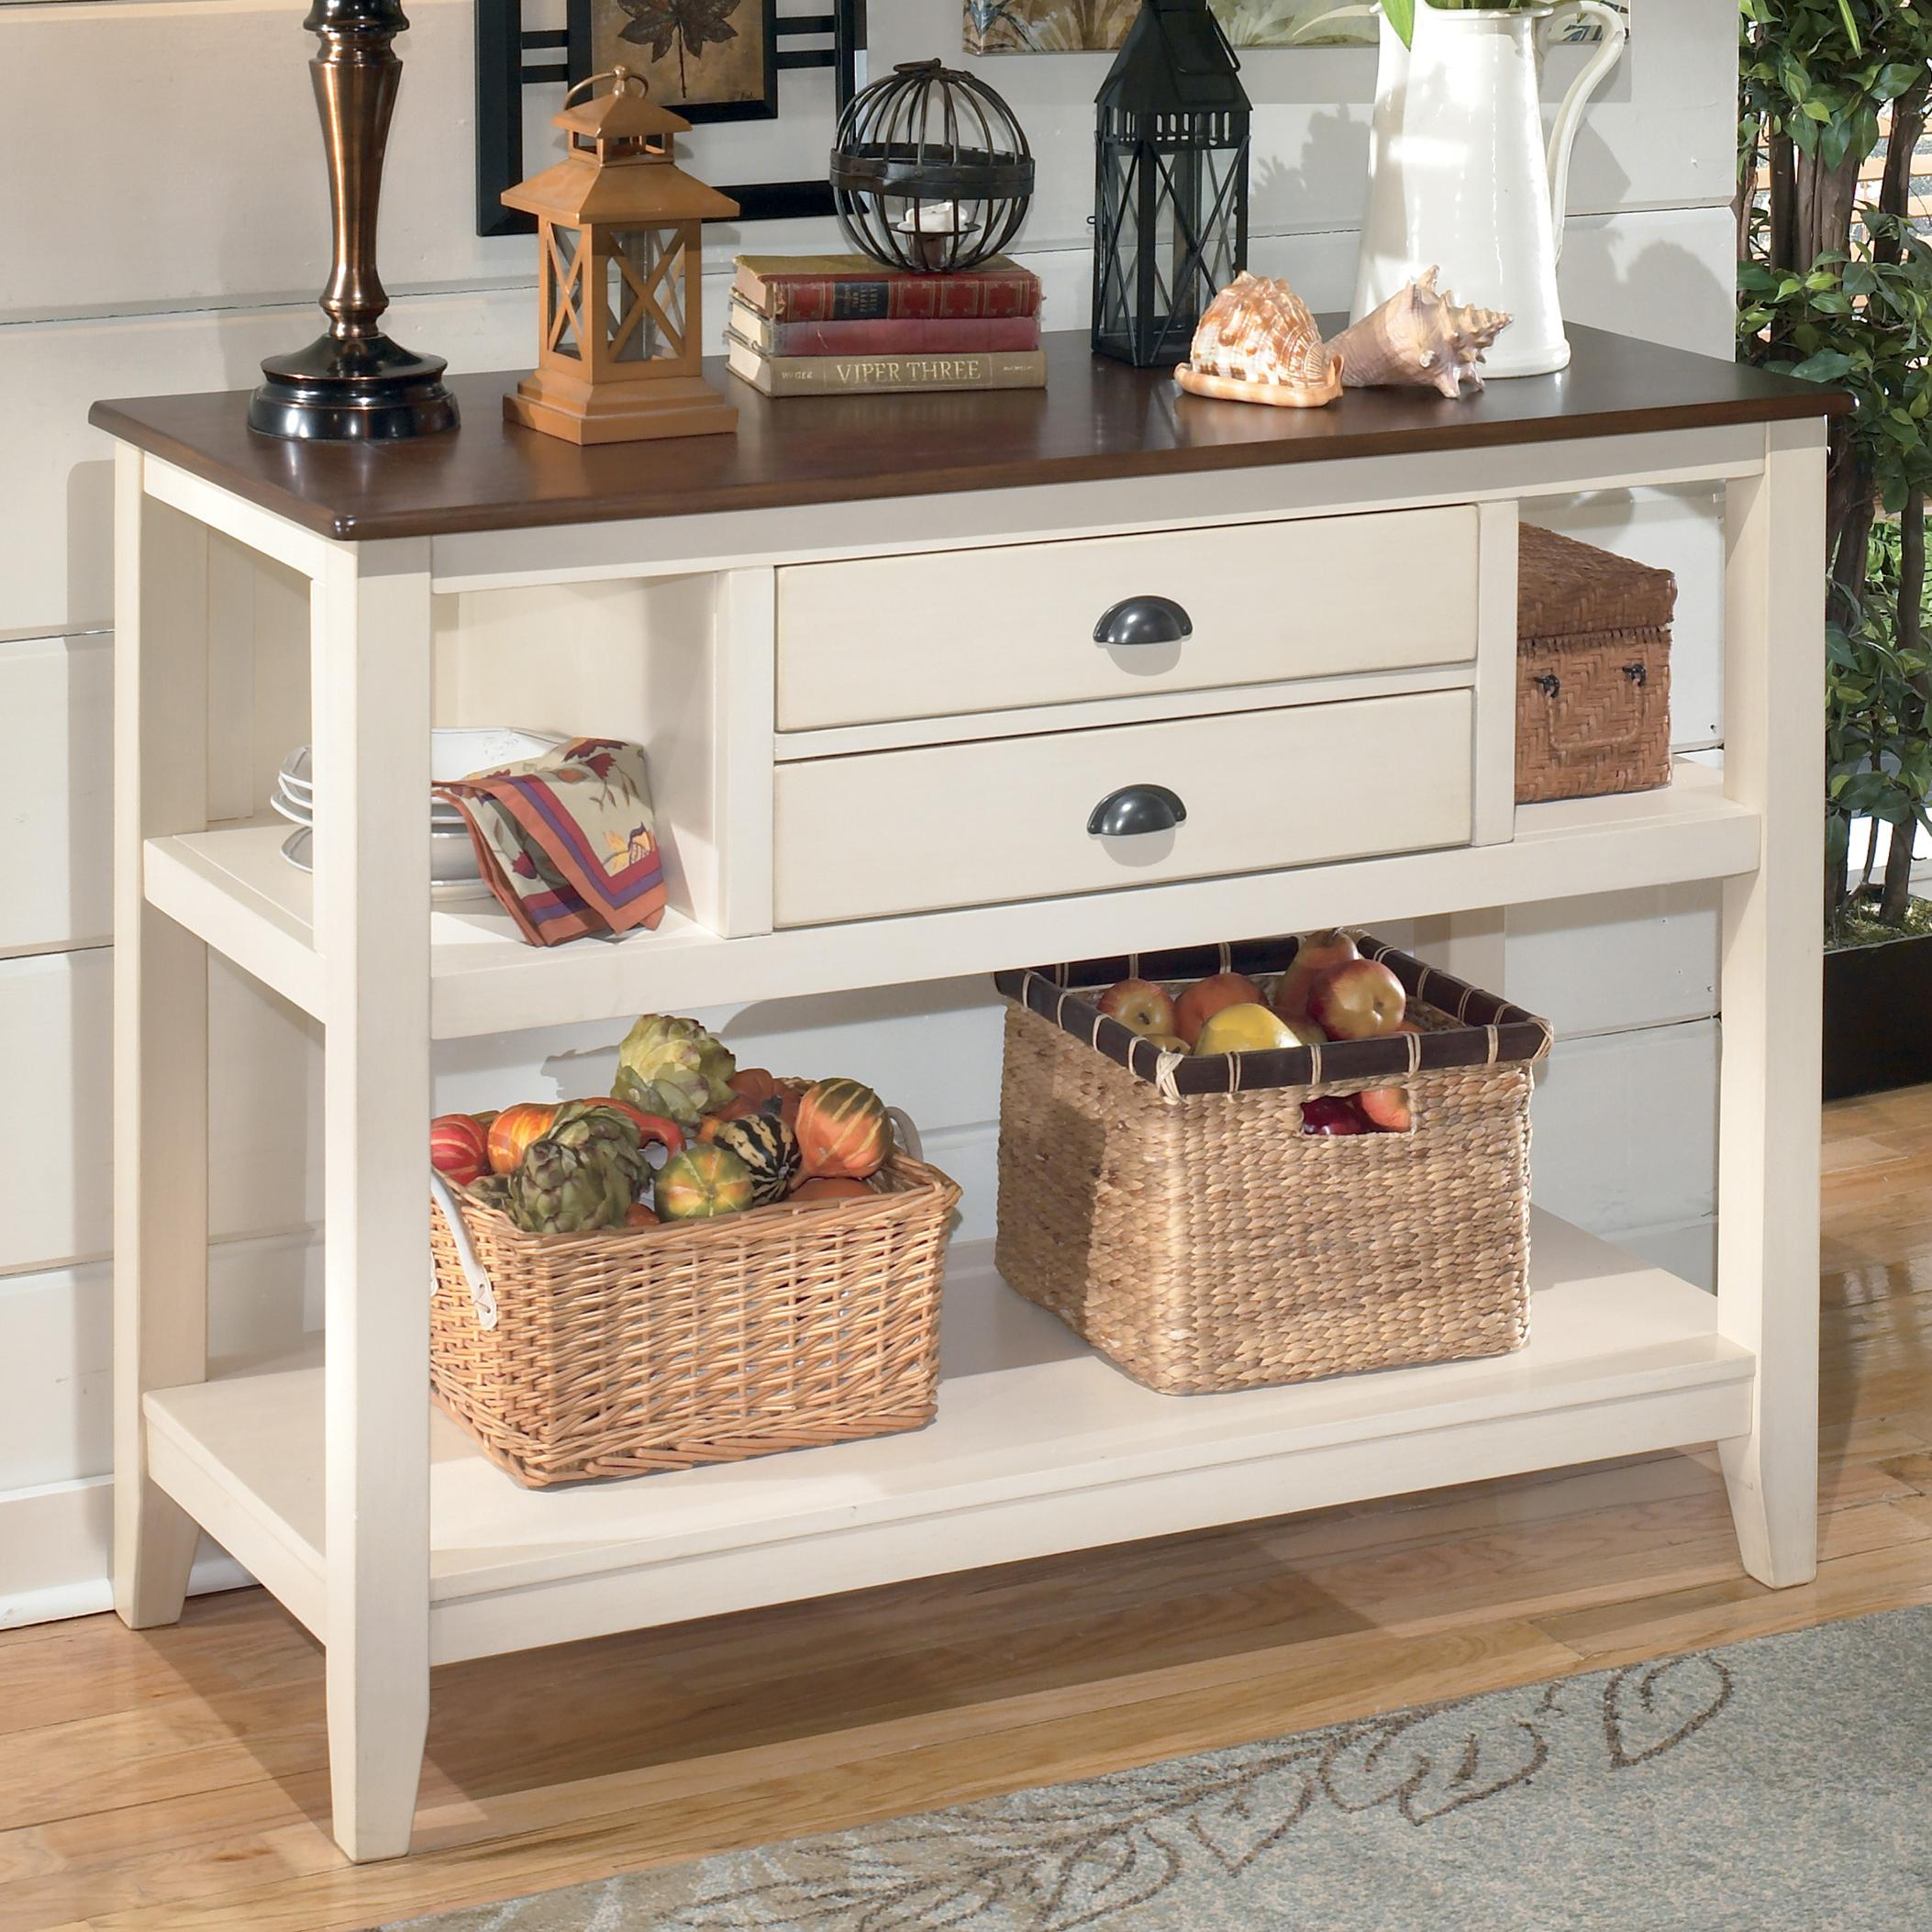 Whitesburg Dining Room Server by Signature Design at Fisher Home Furnishings